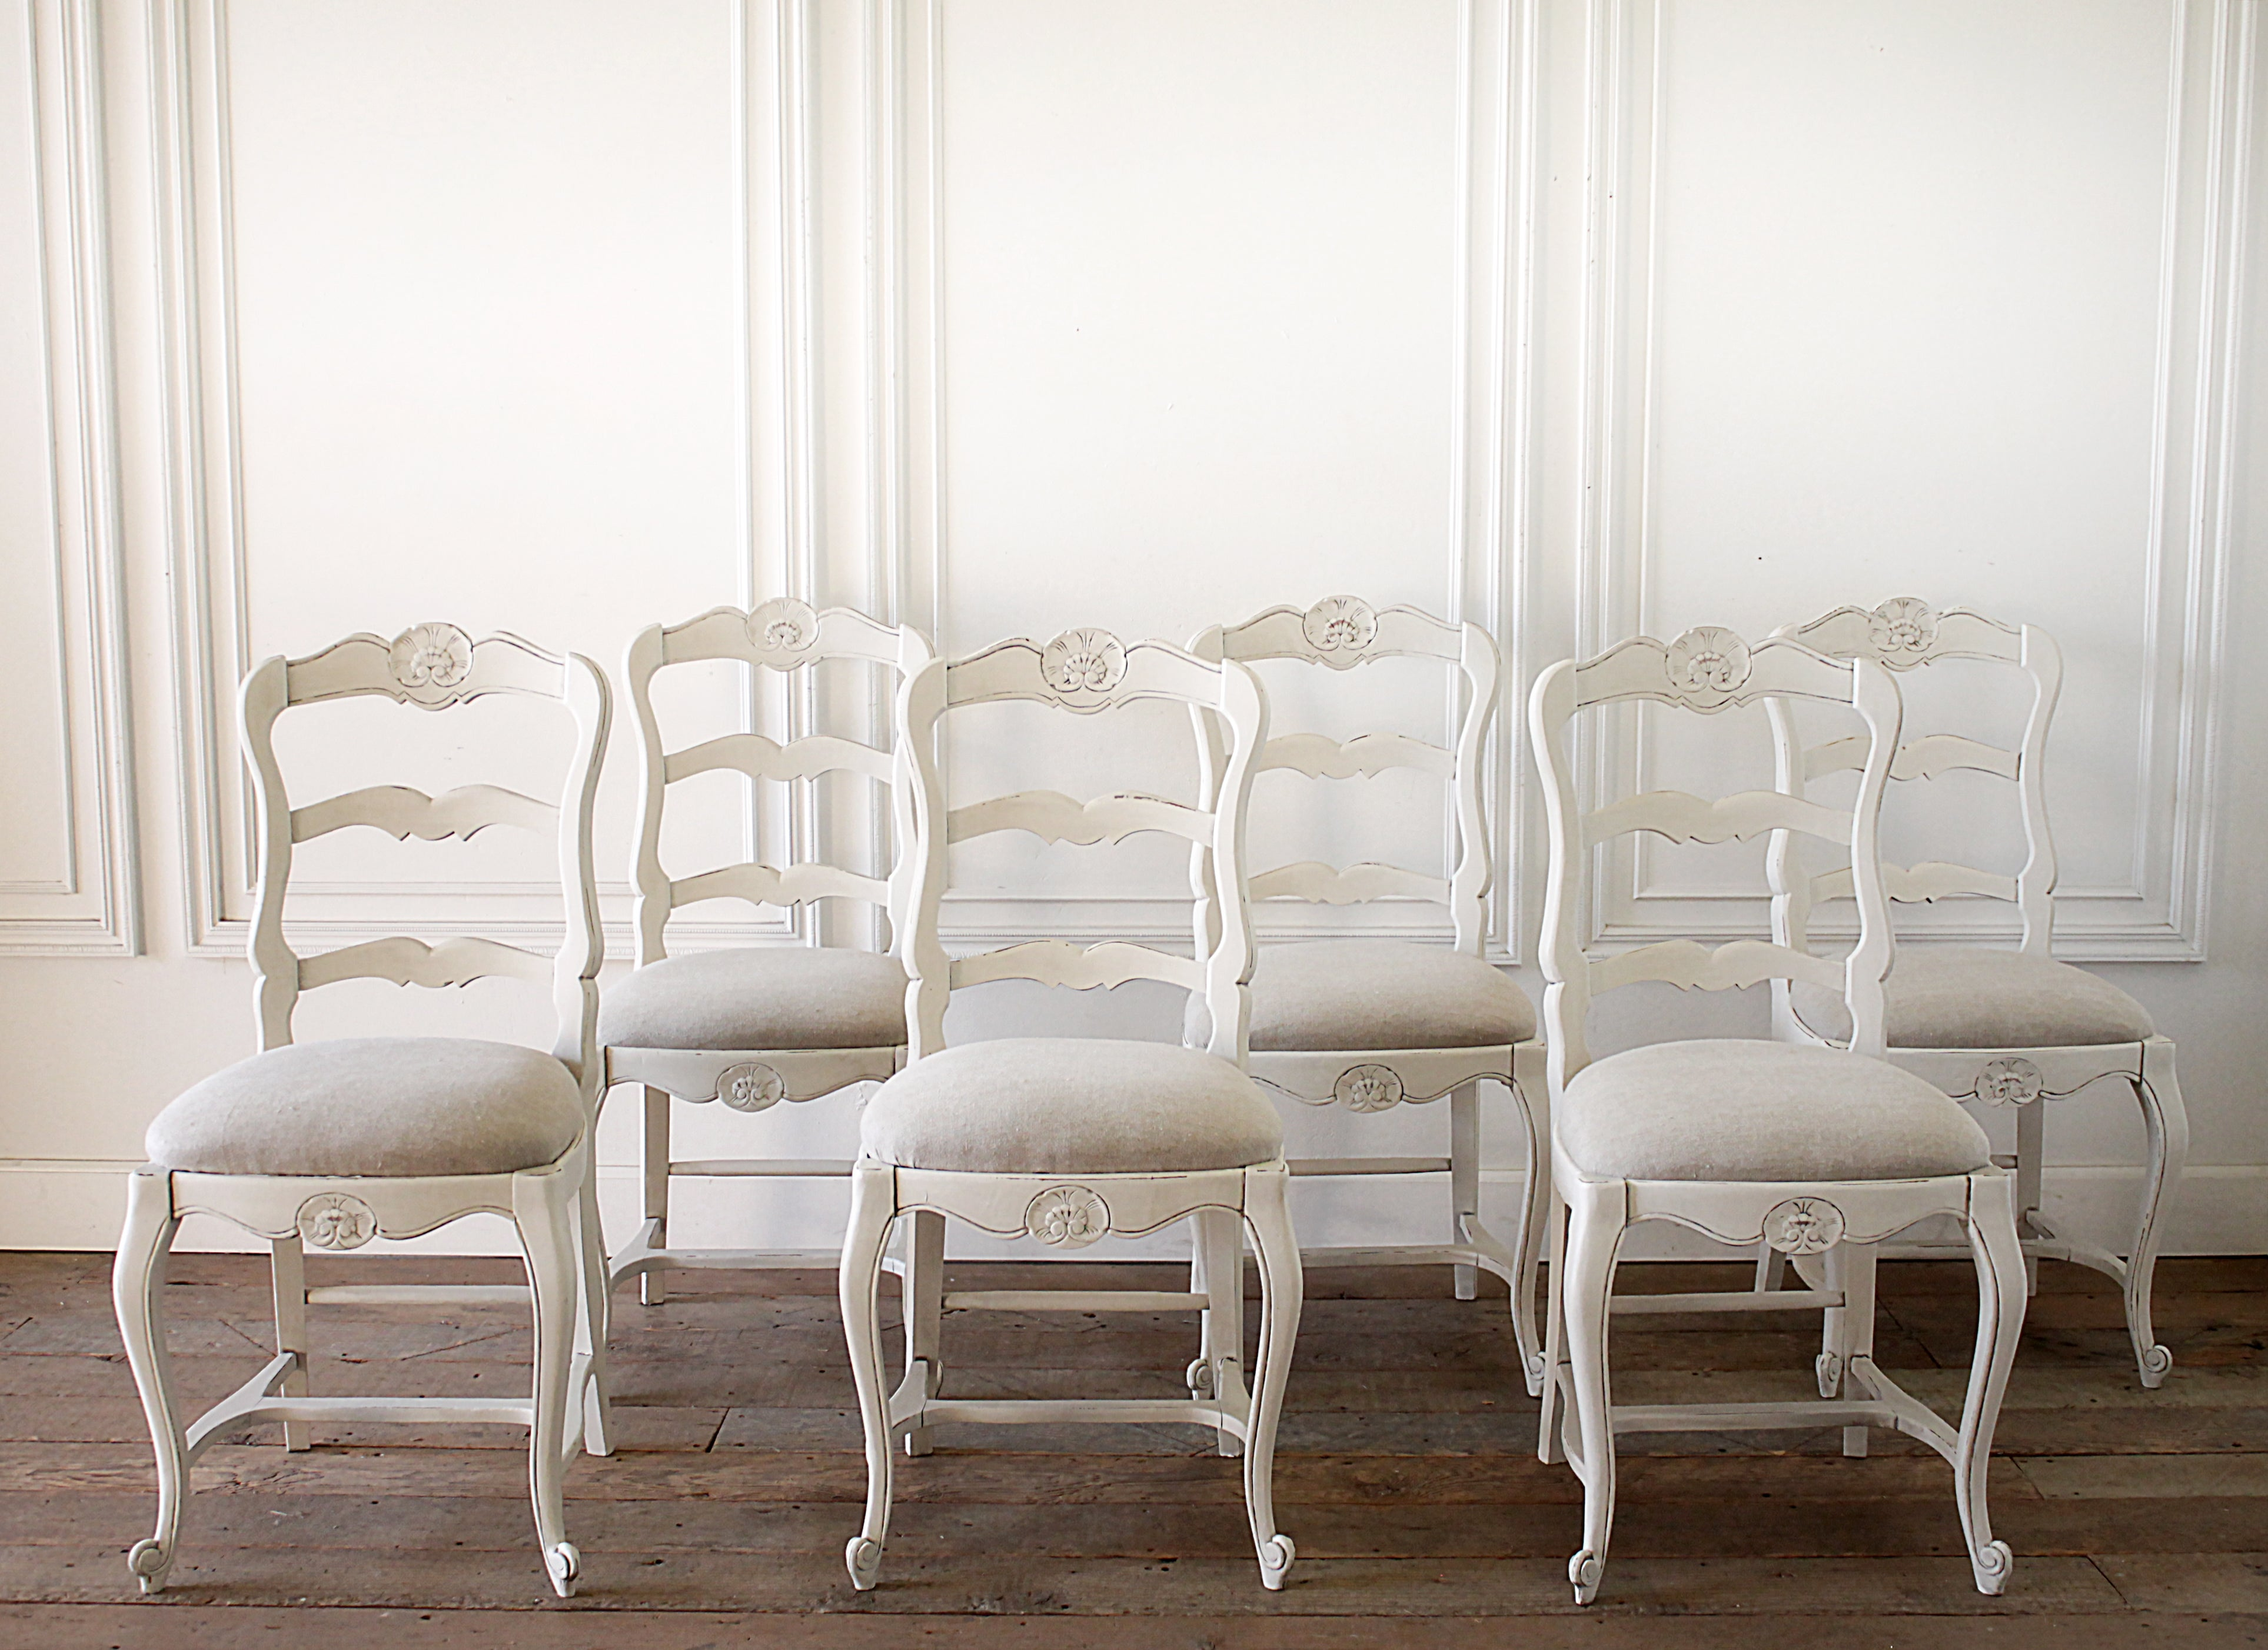 Set Of 6 Painted And Upholstered French Country Style Dining Chairs For  Sale At 1stdibs